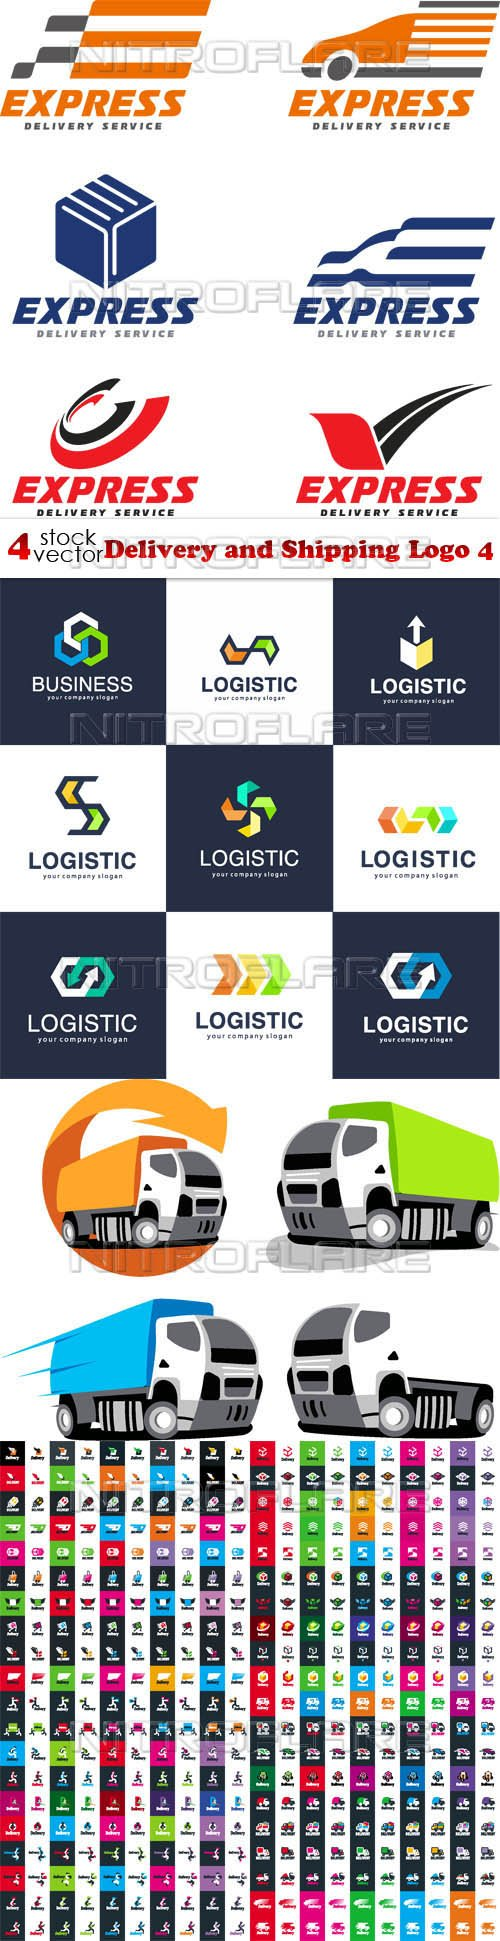 Vectors - Delivery and Shipping Logo 4